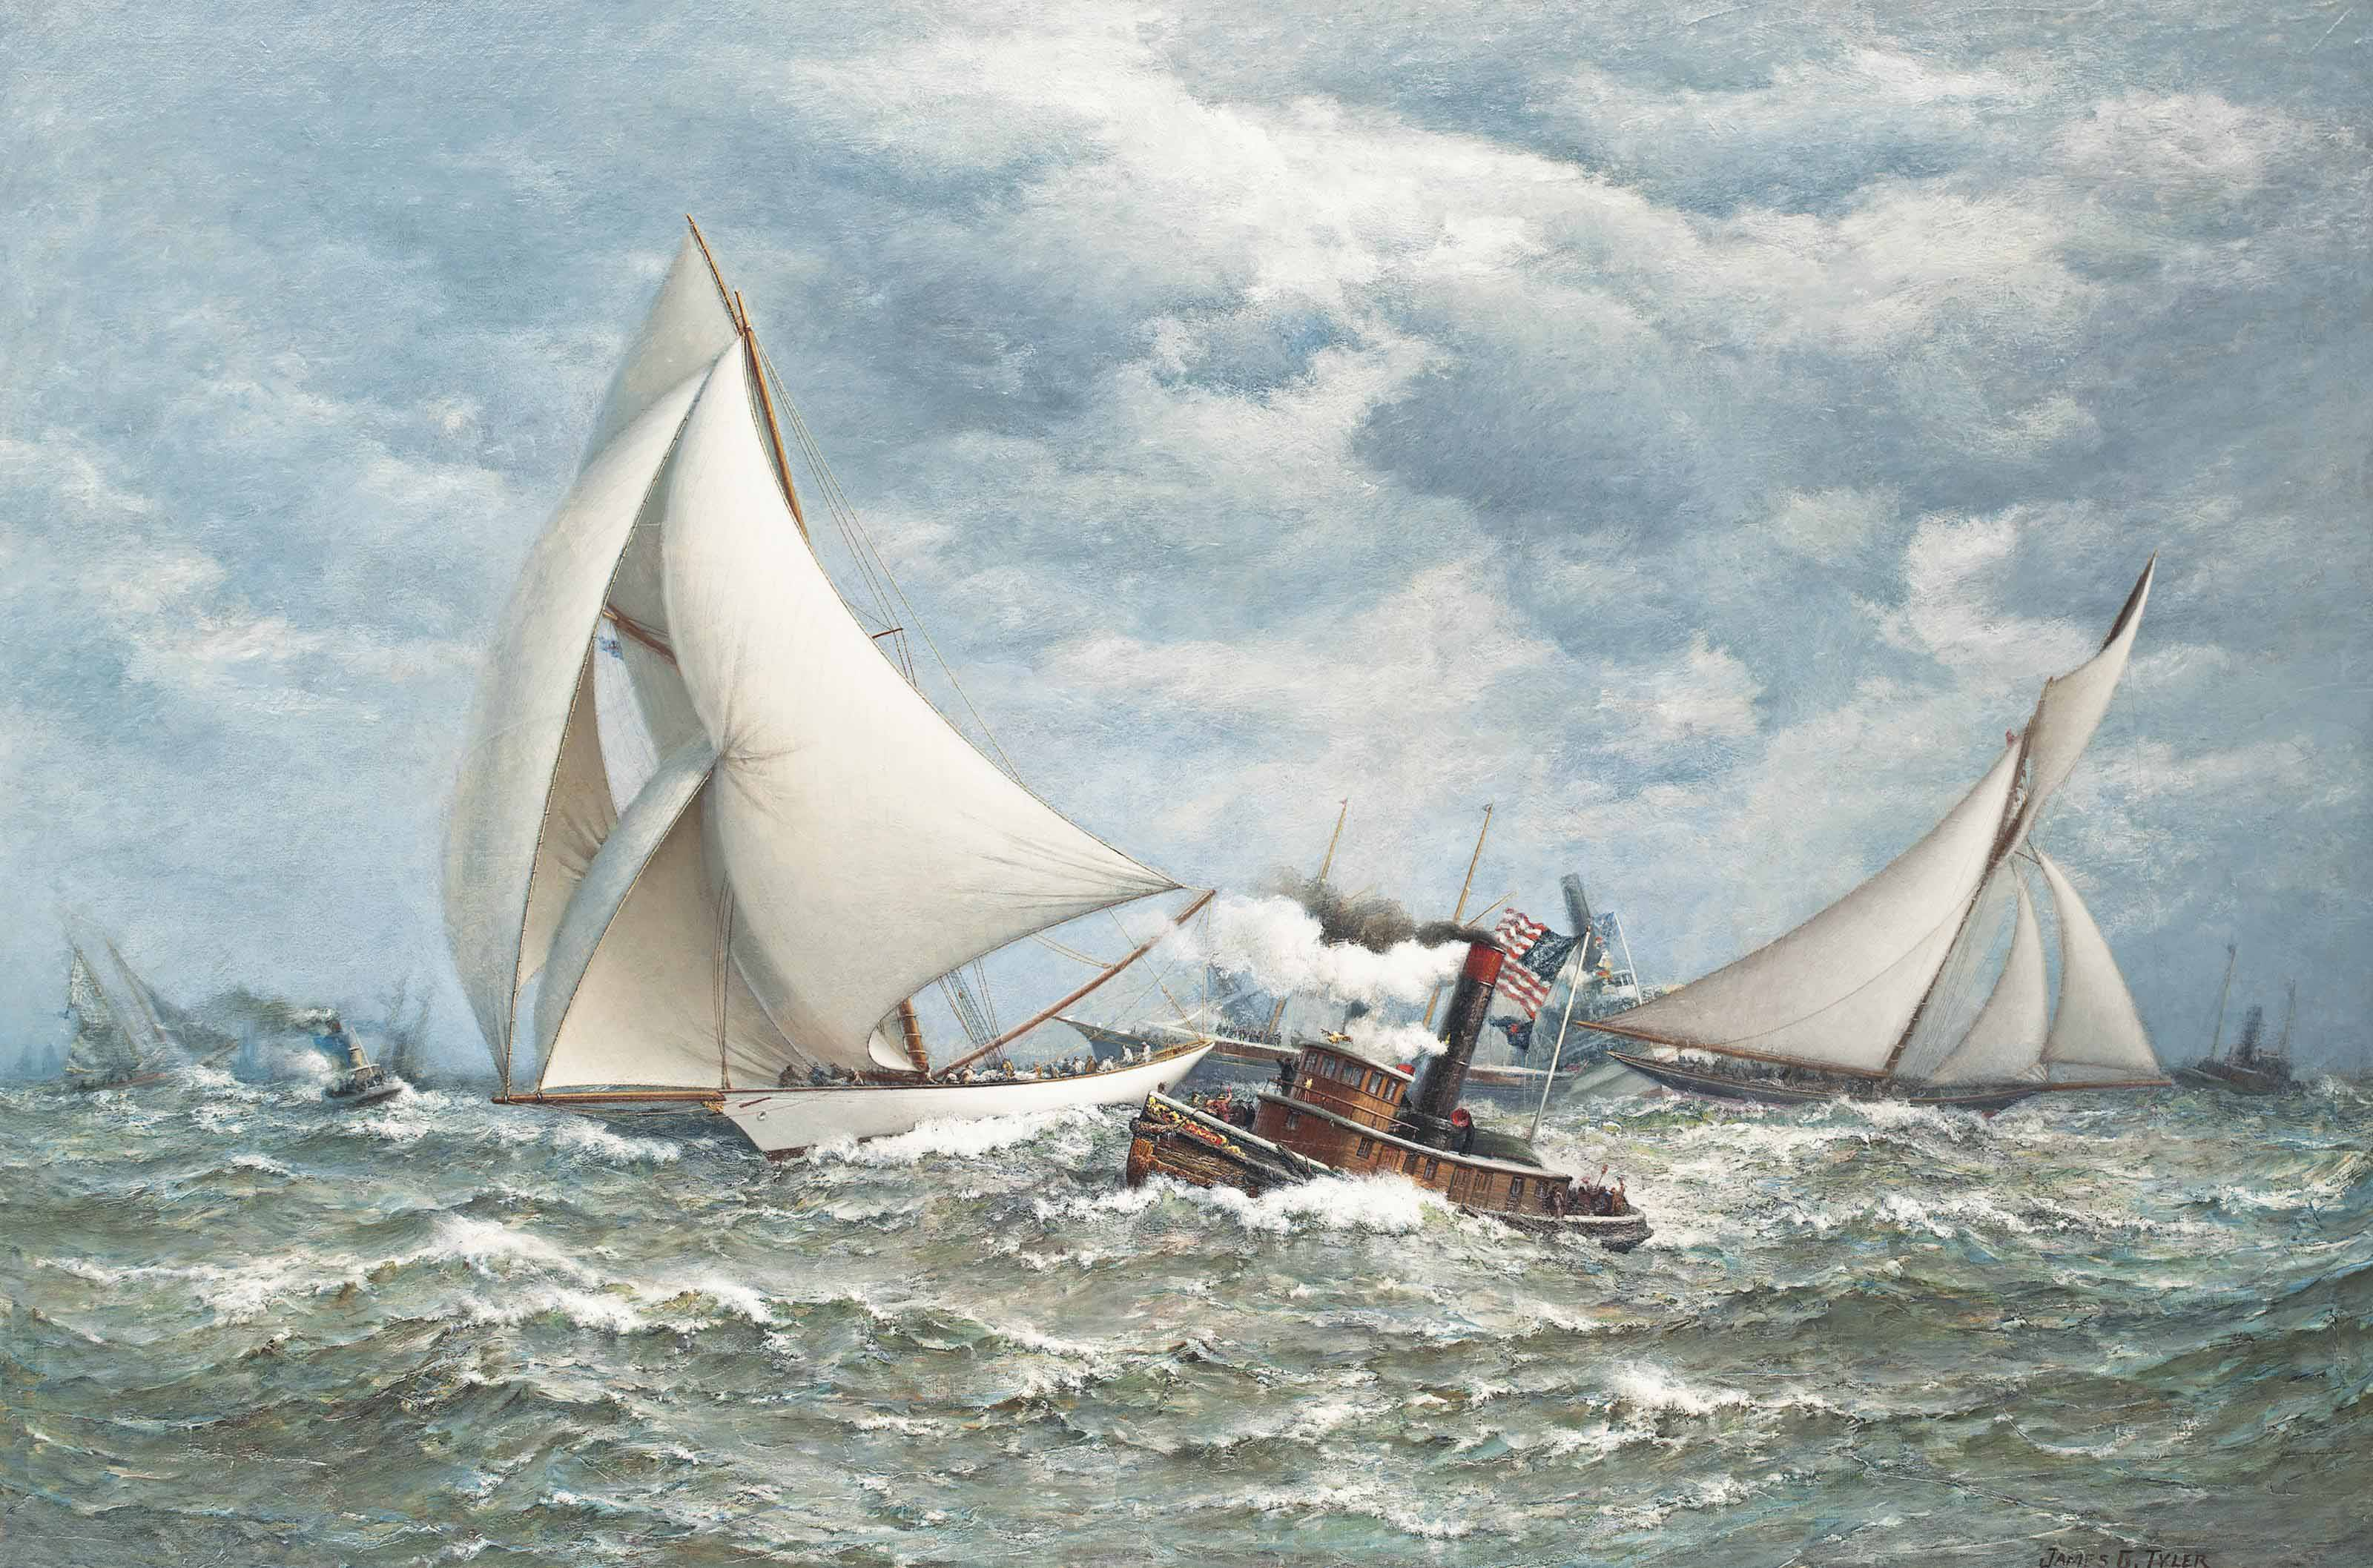 'Twenty miles to windward':  The America's Cup, 1887, Volunteer versus Thistle